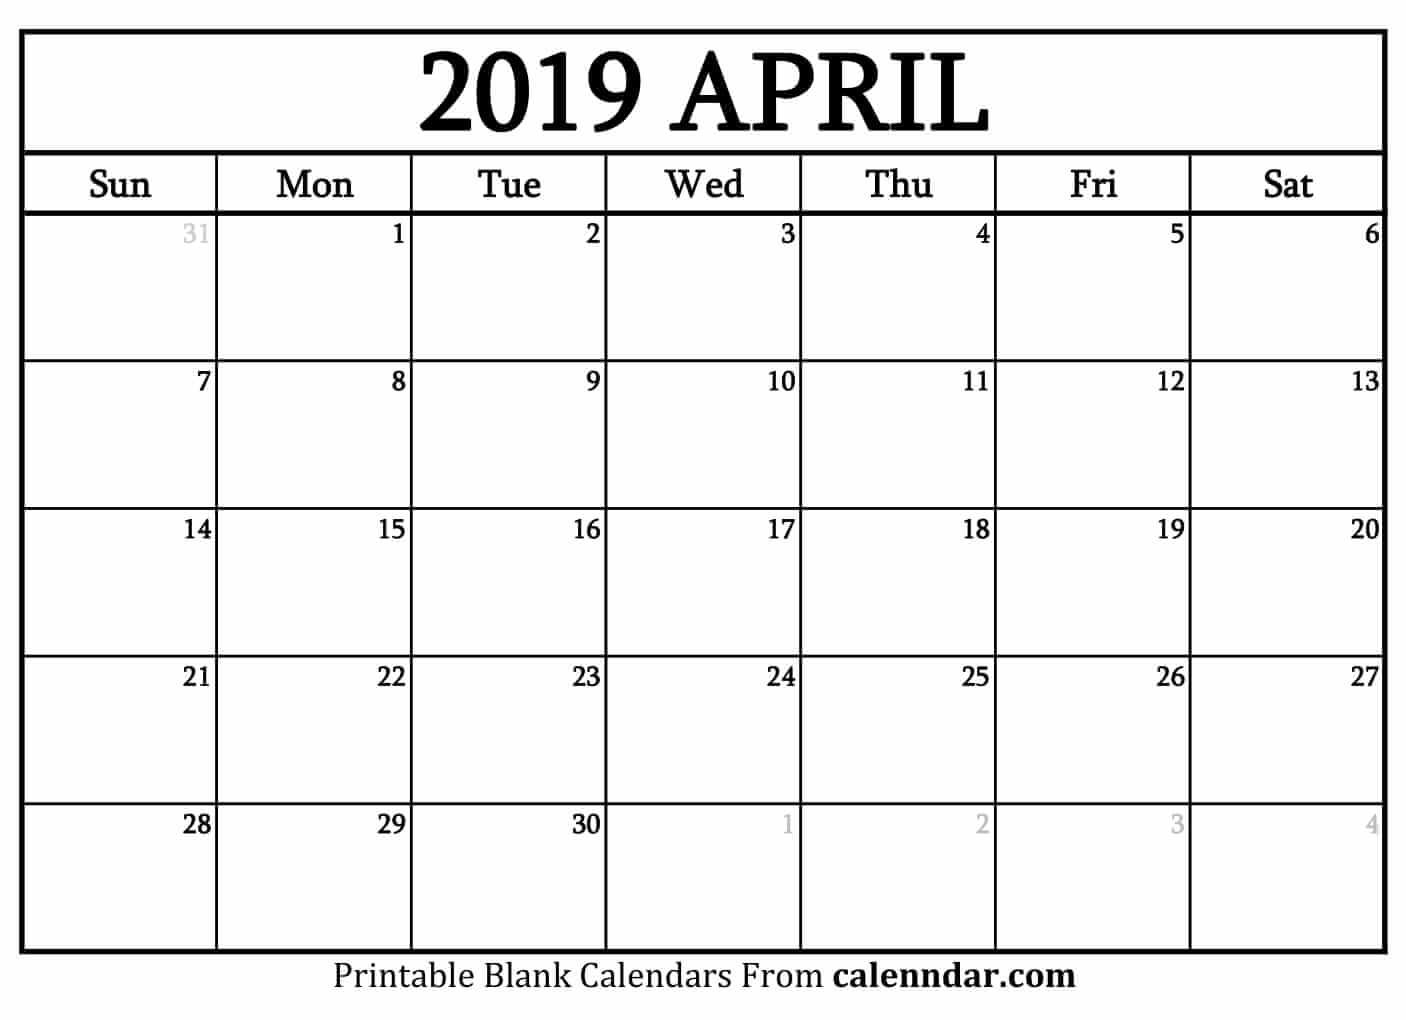 Blank April 2019 Printable Calendar – Printable Calendar 2019| Blank A Calendar For April 2019